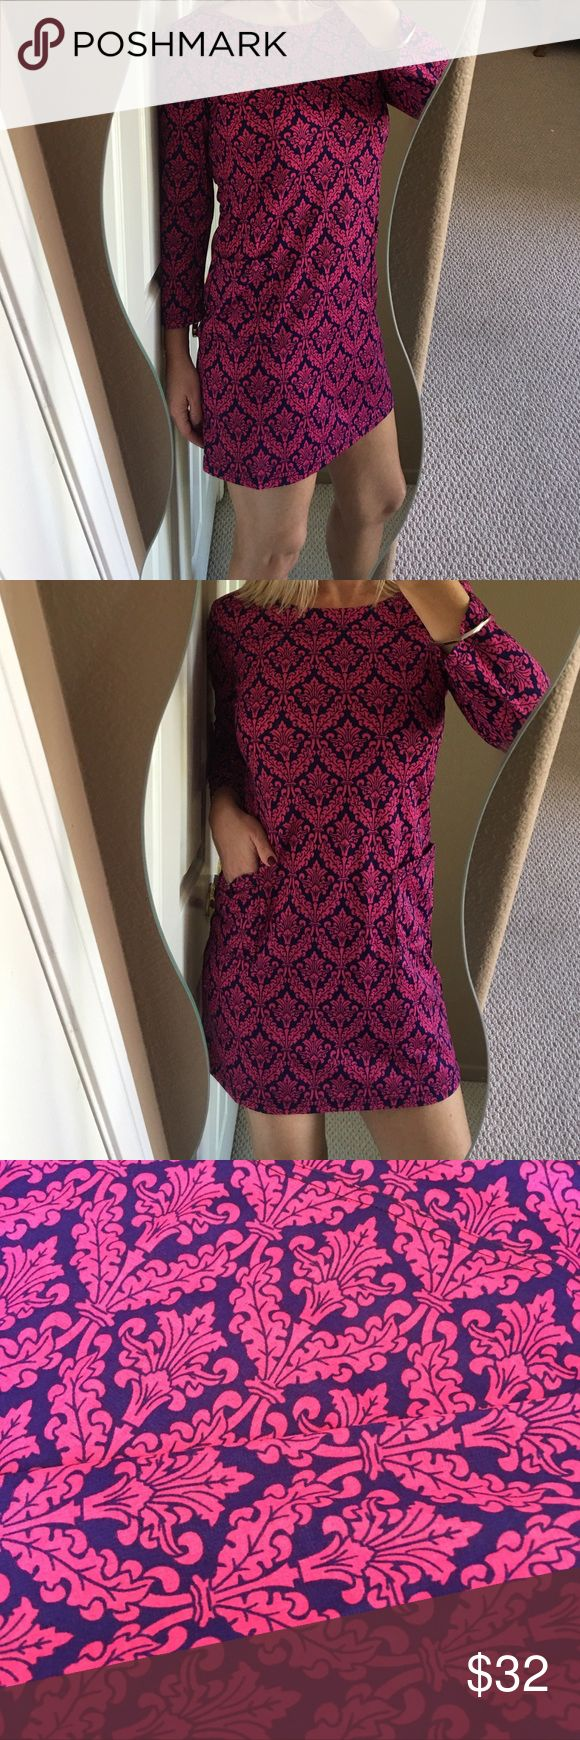 💕Brand New Fuchsia & Navy Lattice Patterned Dress Beautiful and chic brand new fuchsia and navy lattice patterned mini dress! Polyester/Lanon fabric, front pockets, 3/4 length sleeves, hits above knee. Super comfortable and flattering fit! Perfect autumn dress! Back closure with gold plated button. ❤️ Boutique Dresses Mini